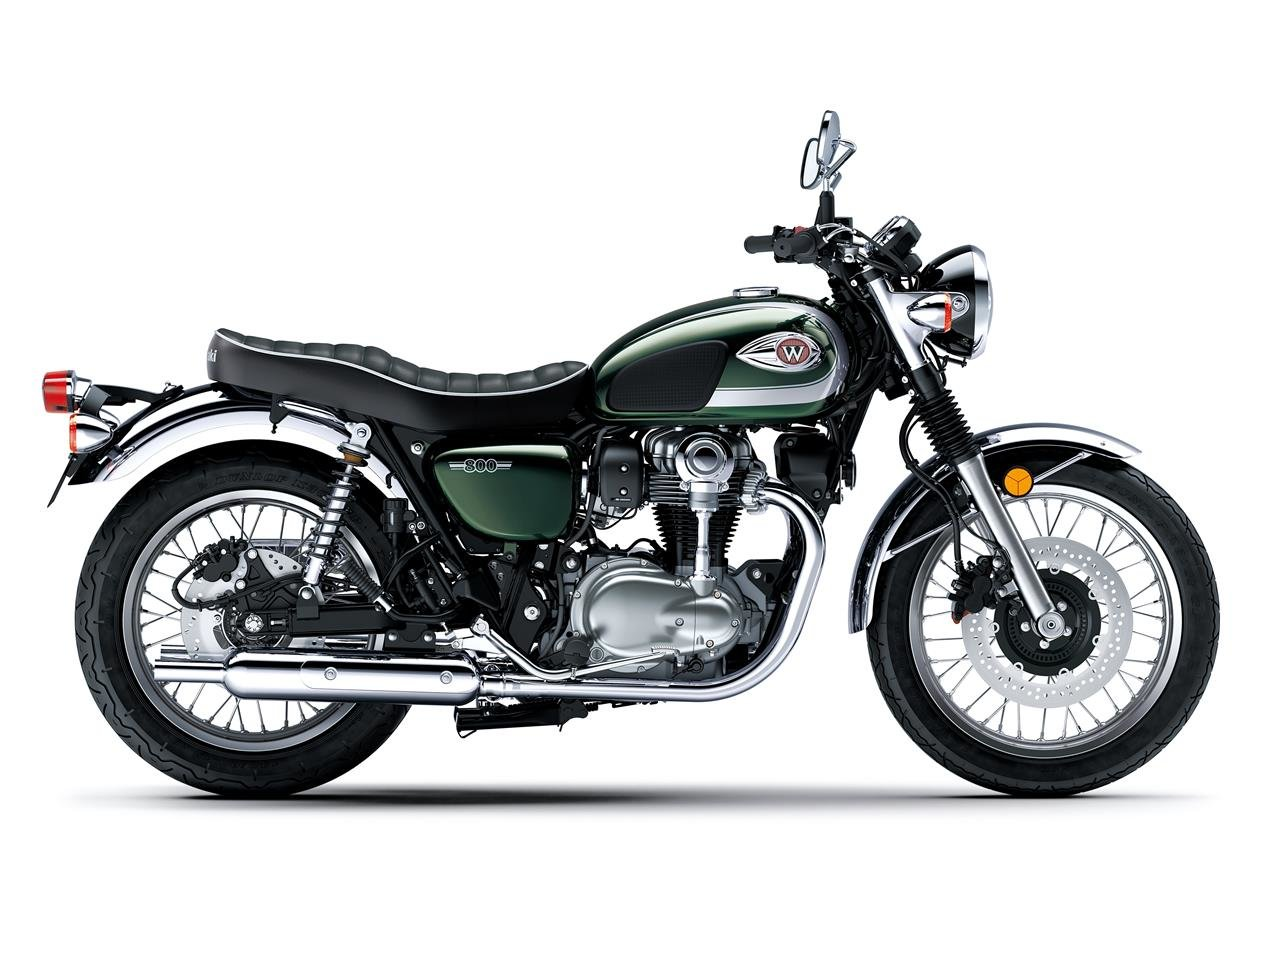 New 2020 Kawasaki W800 ABS **IN STOCK WITH FREE DELIVERY** For Sale (picture 2 of 6)